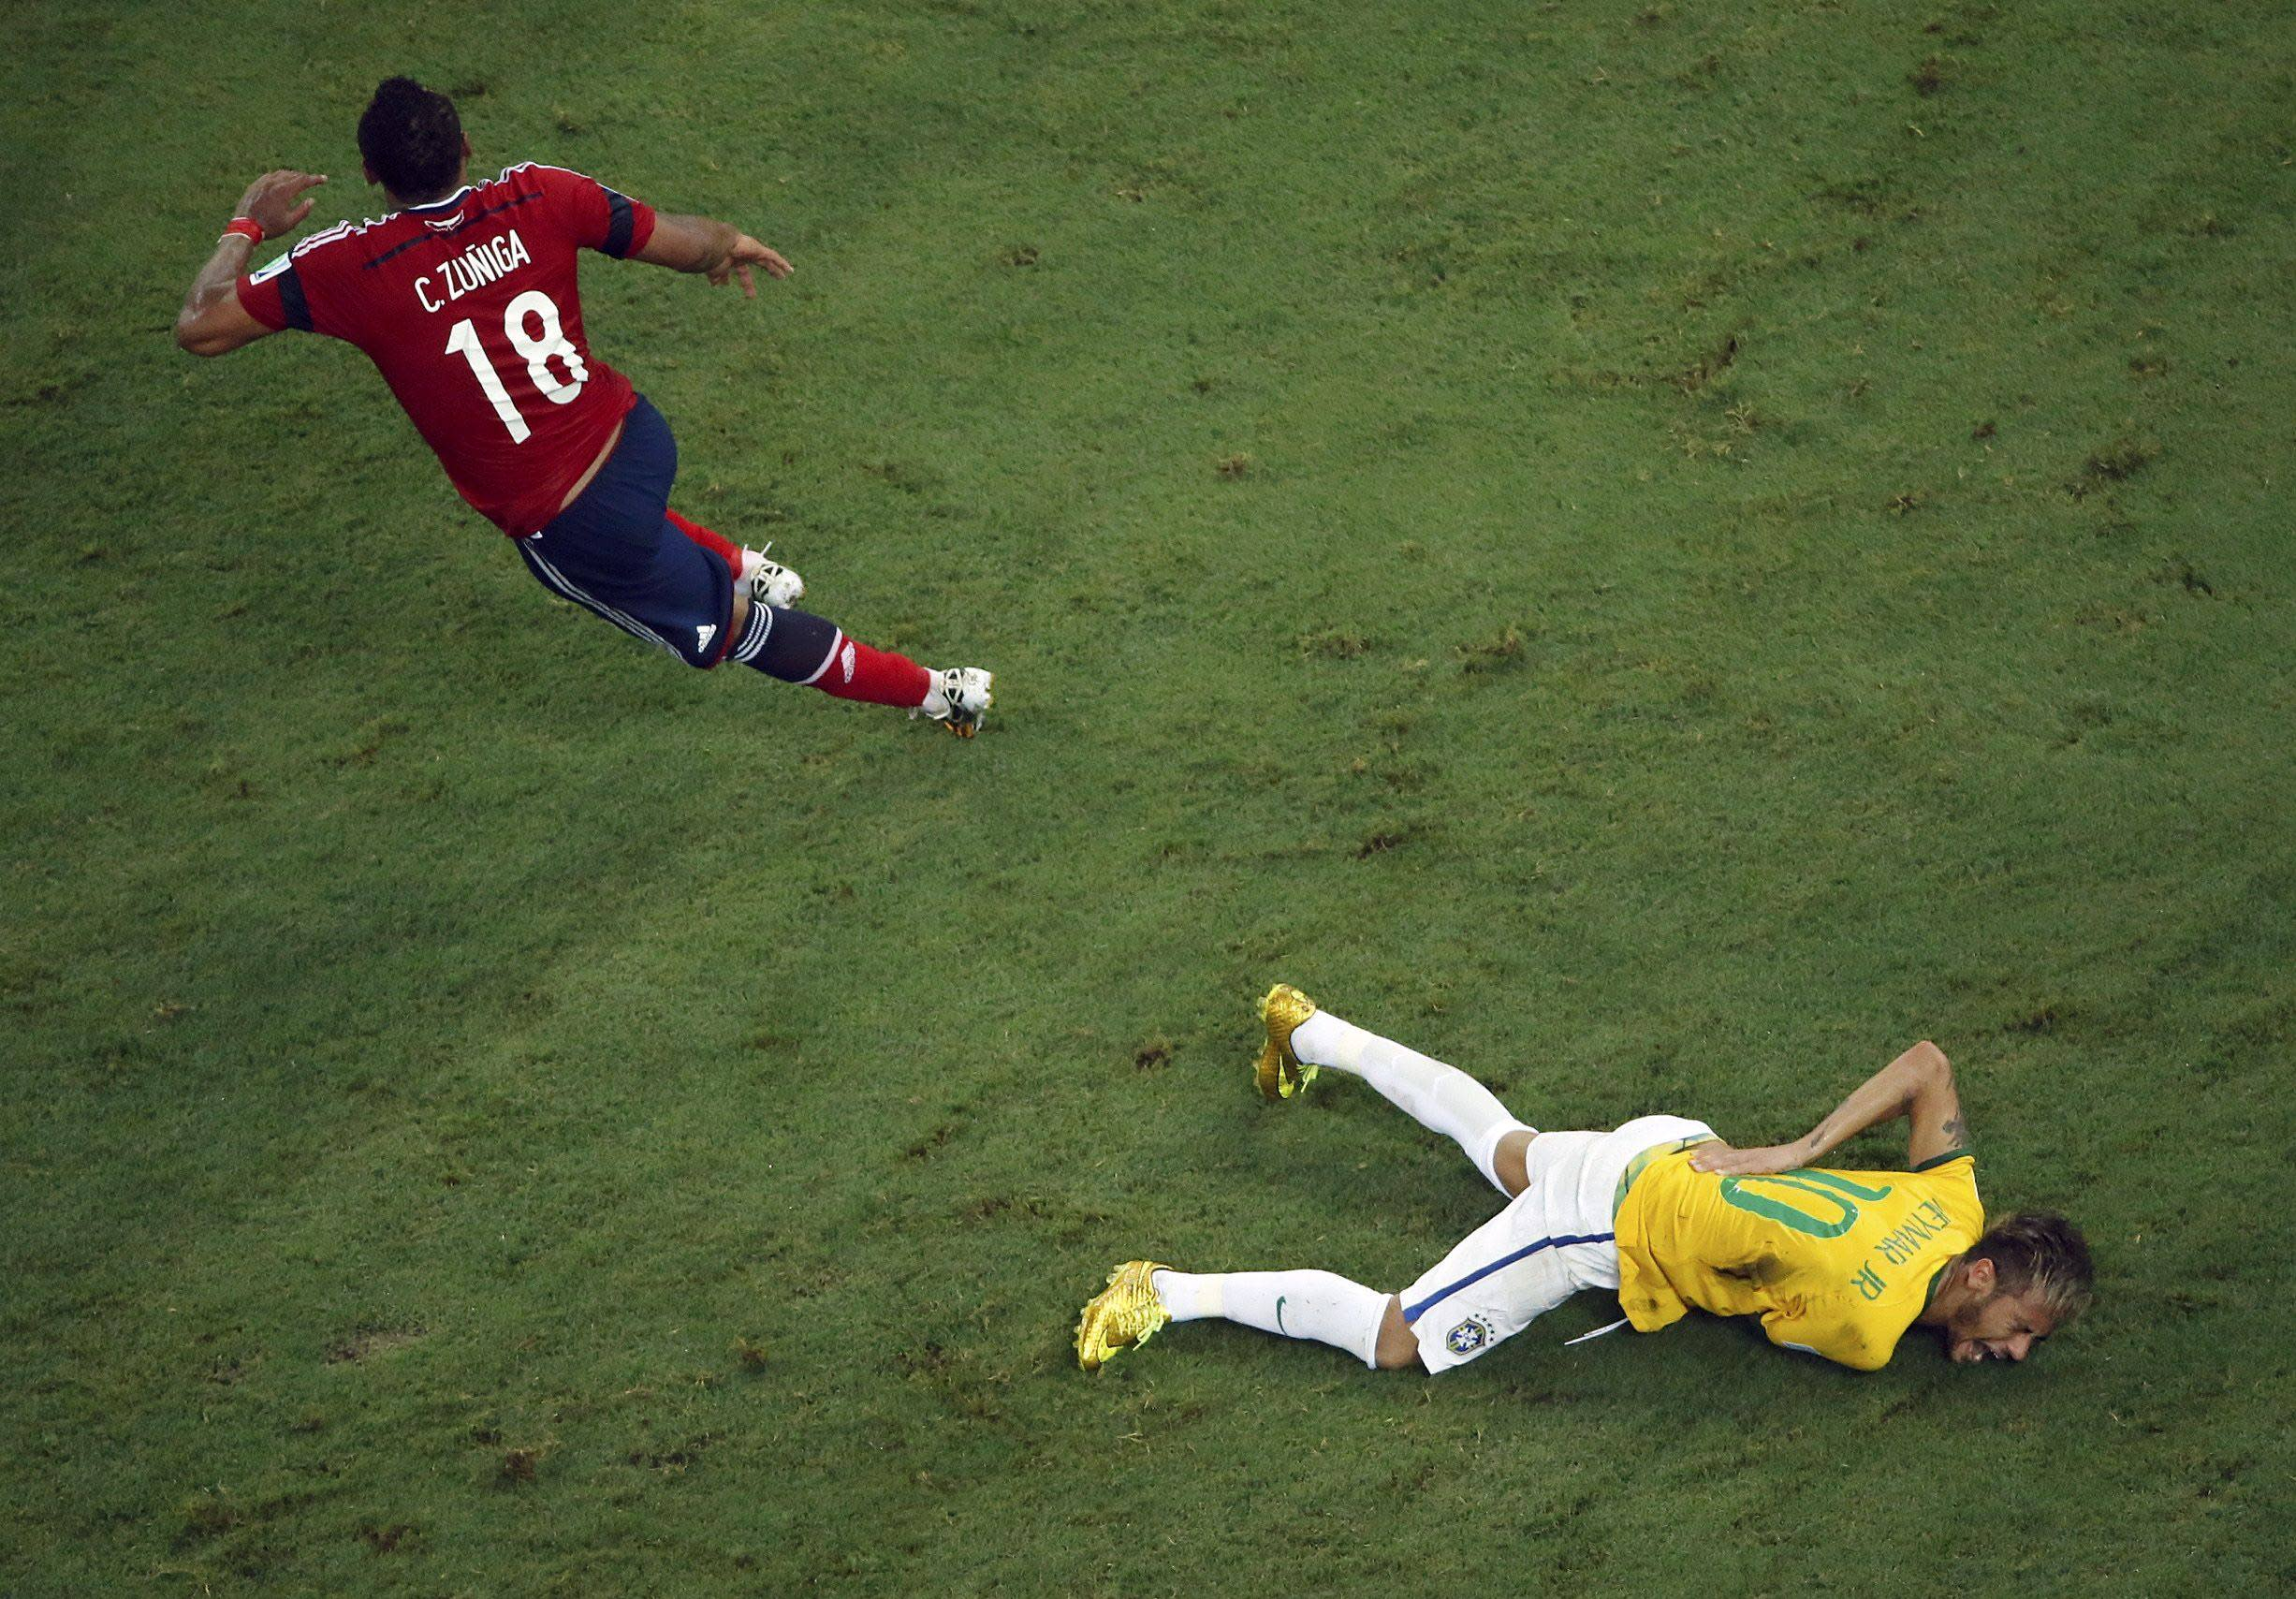 Ouch! Worst sports injuries of 2014